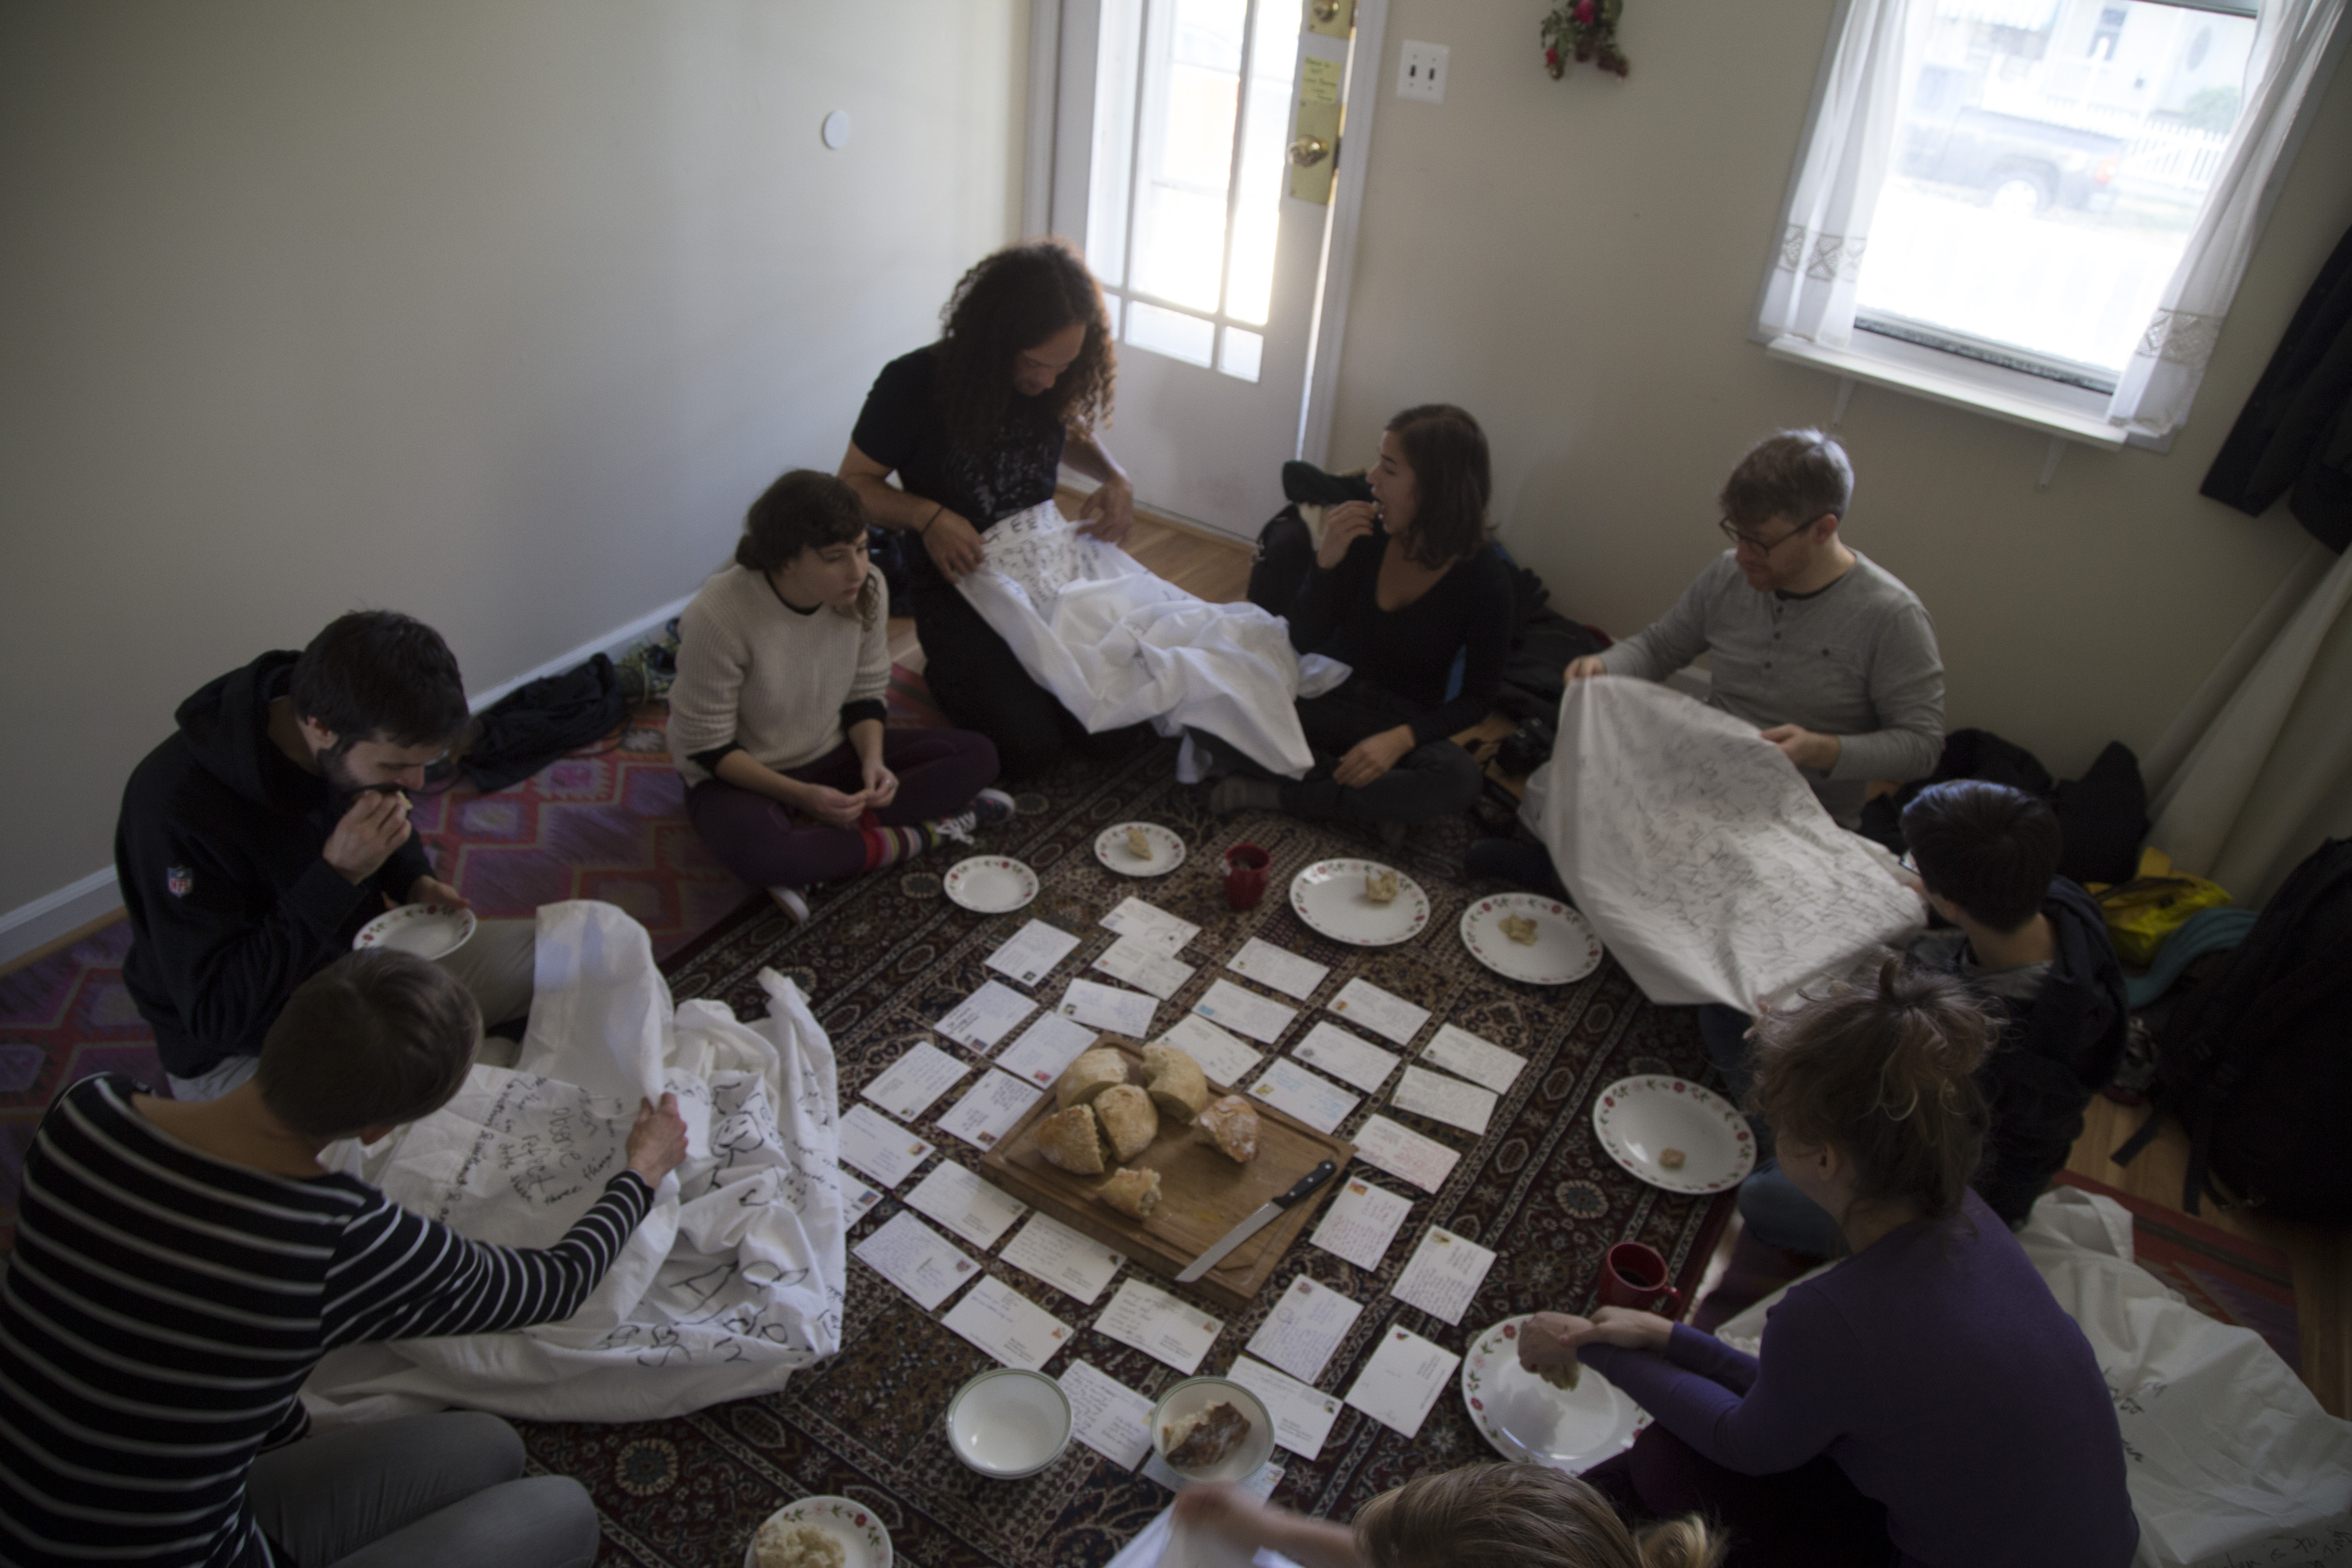 The Pilgrim House in Baltimore. Pilgrims break bread (the only food they'll have on pilgrimage) and read postcards sent from fellow travelers around the world. Photo by Katy McCarthy.